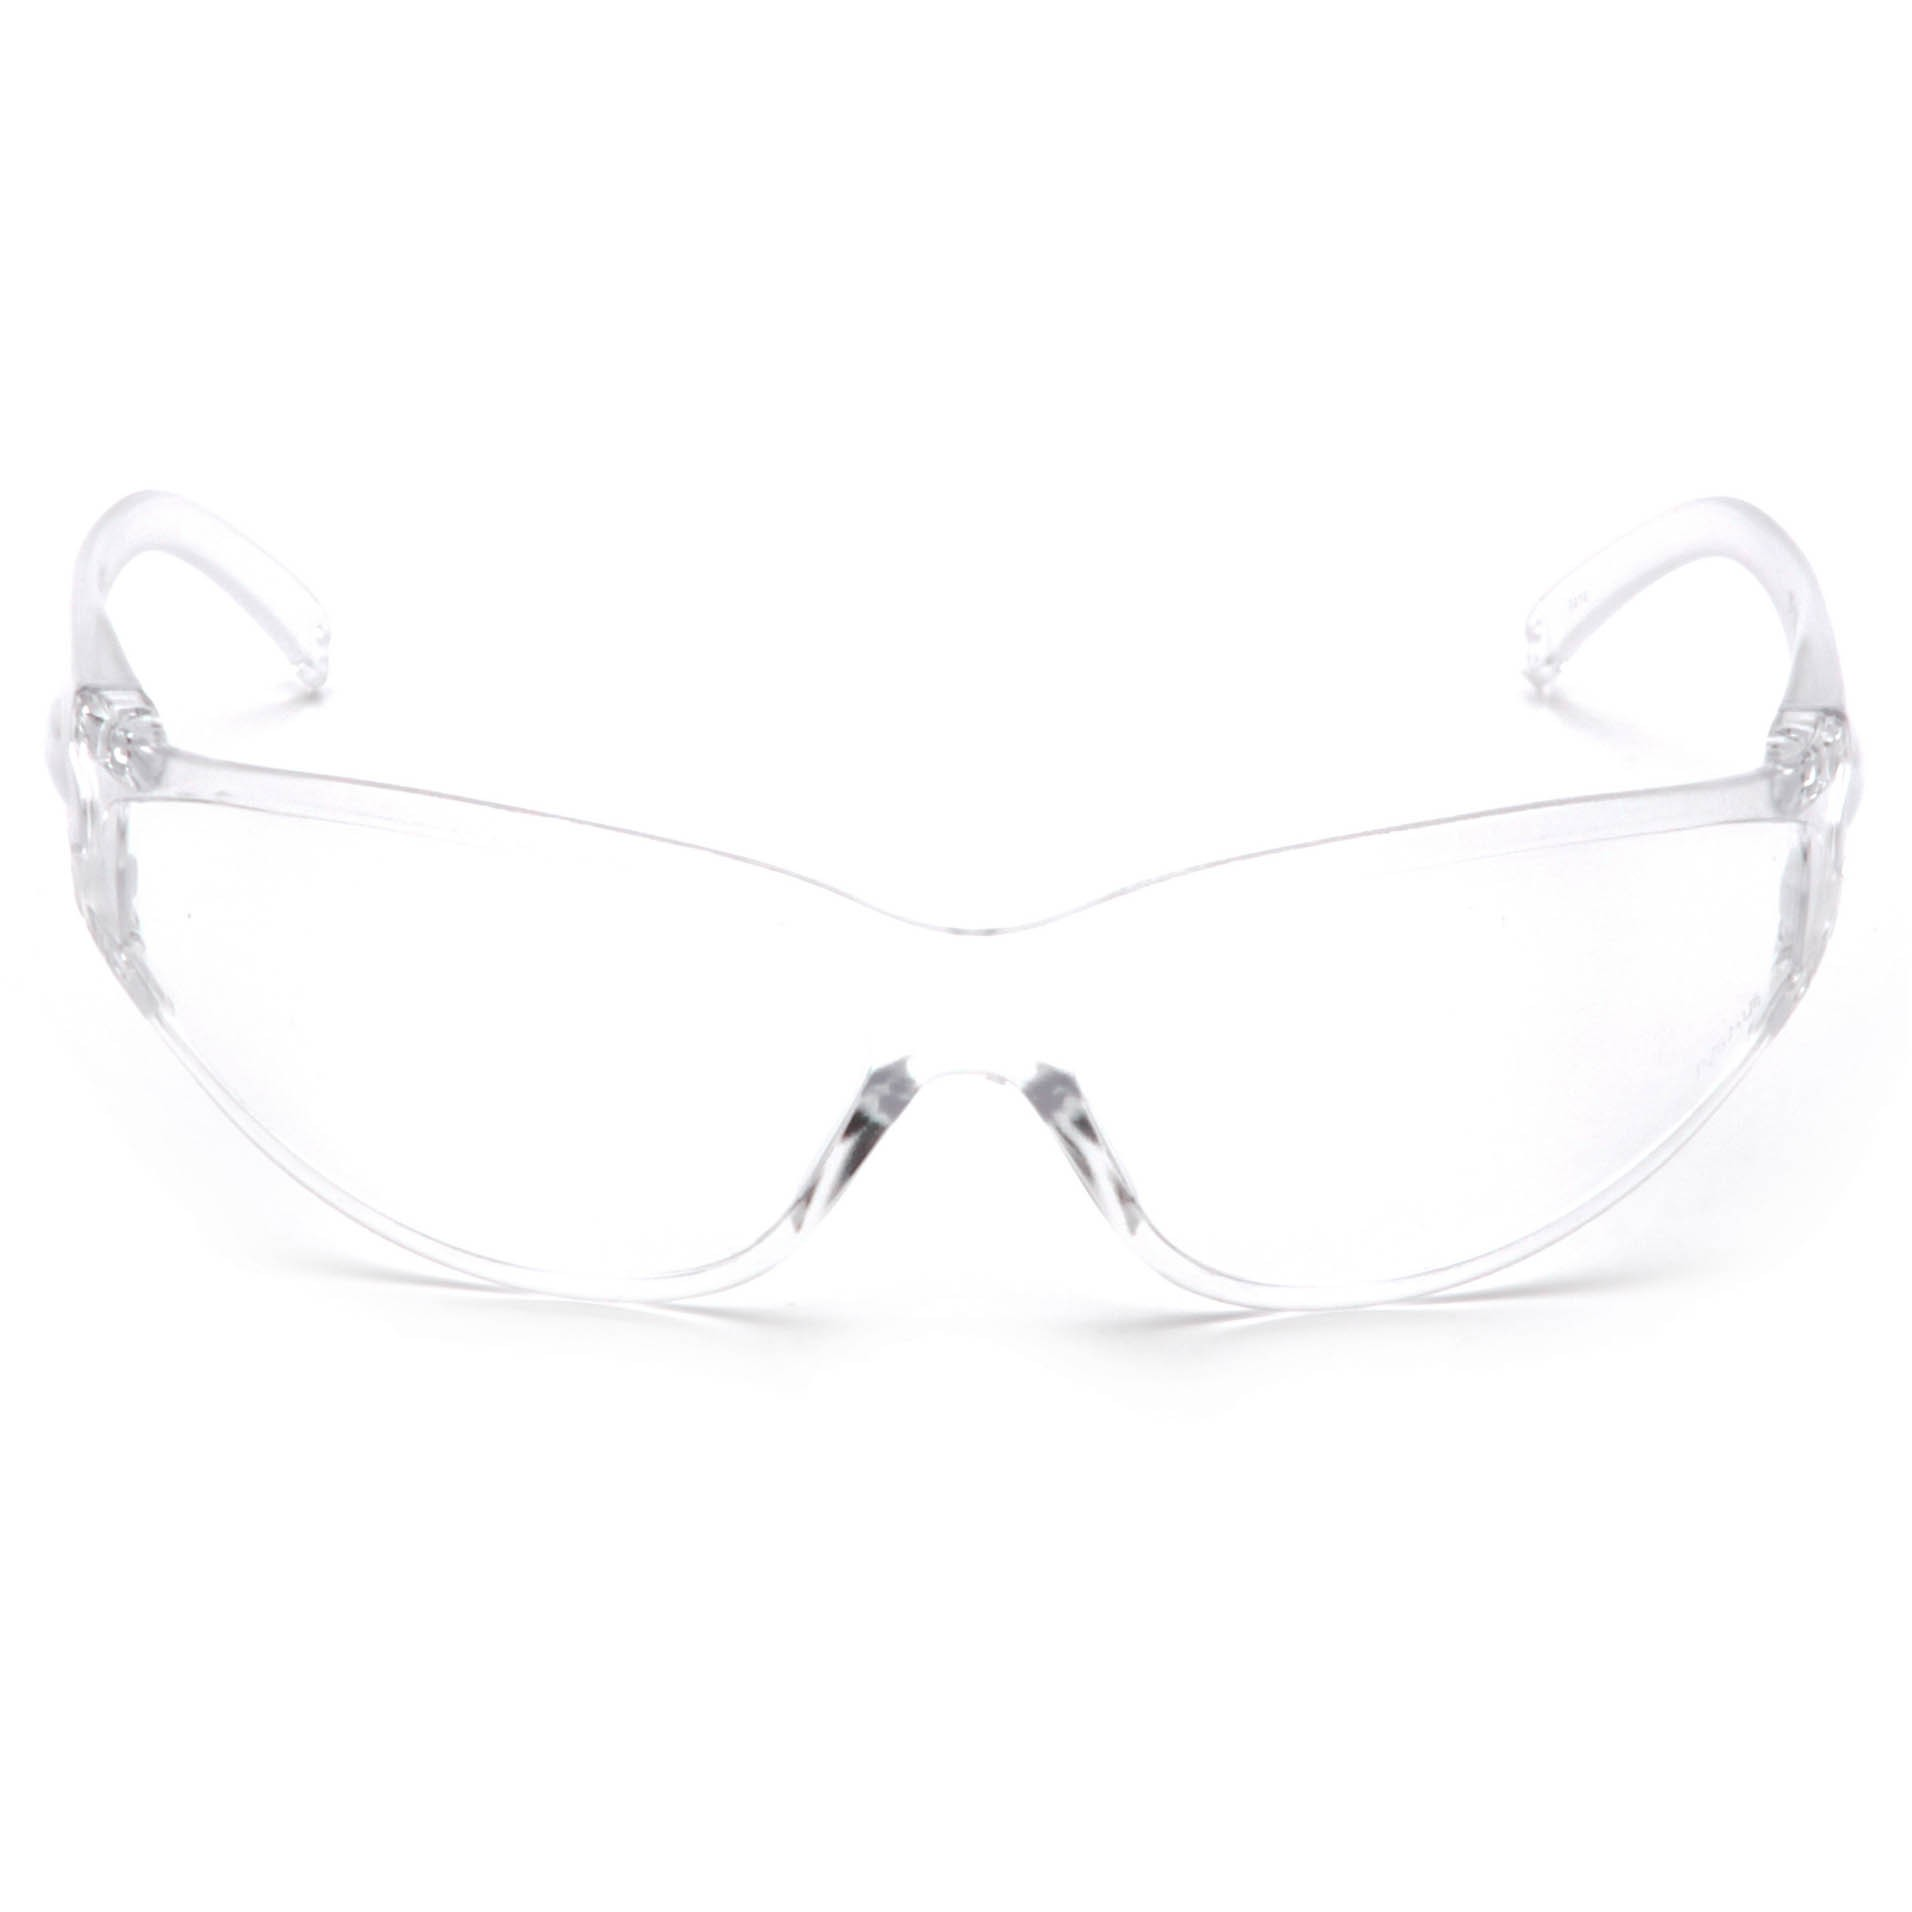 pyramex fastrac safety glasses clear frame clear lens